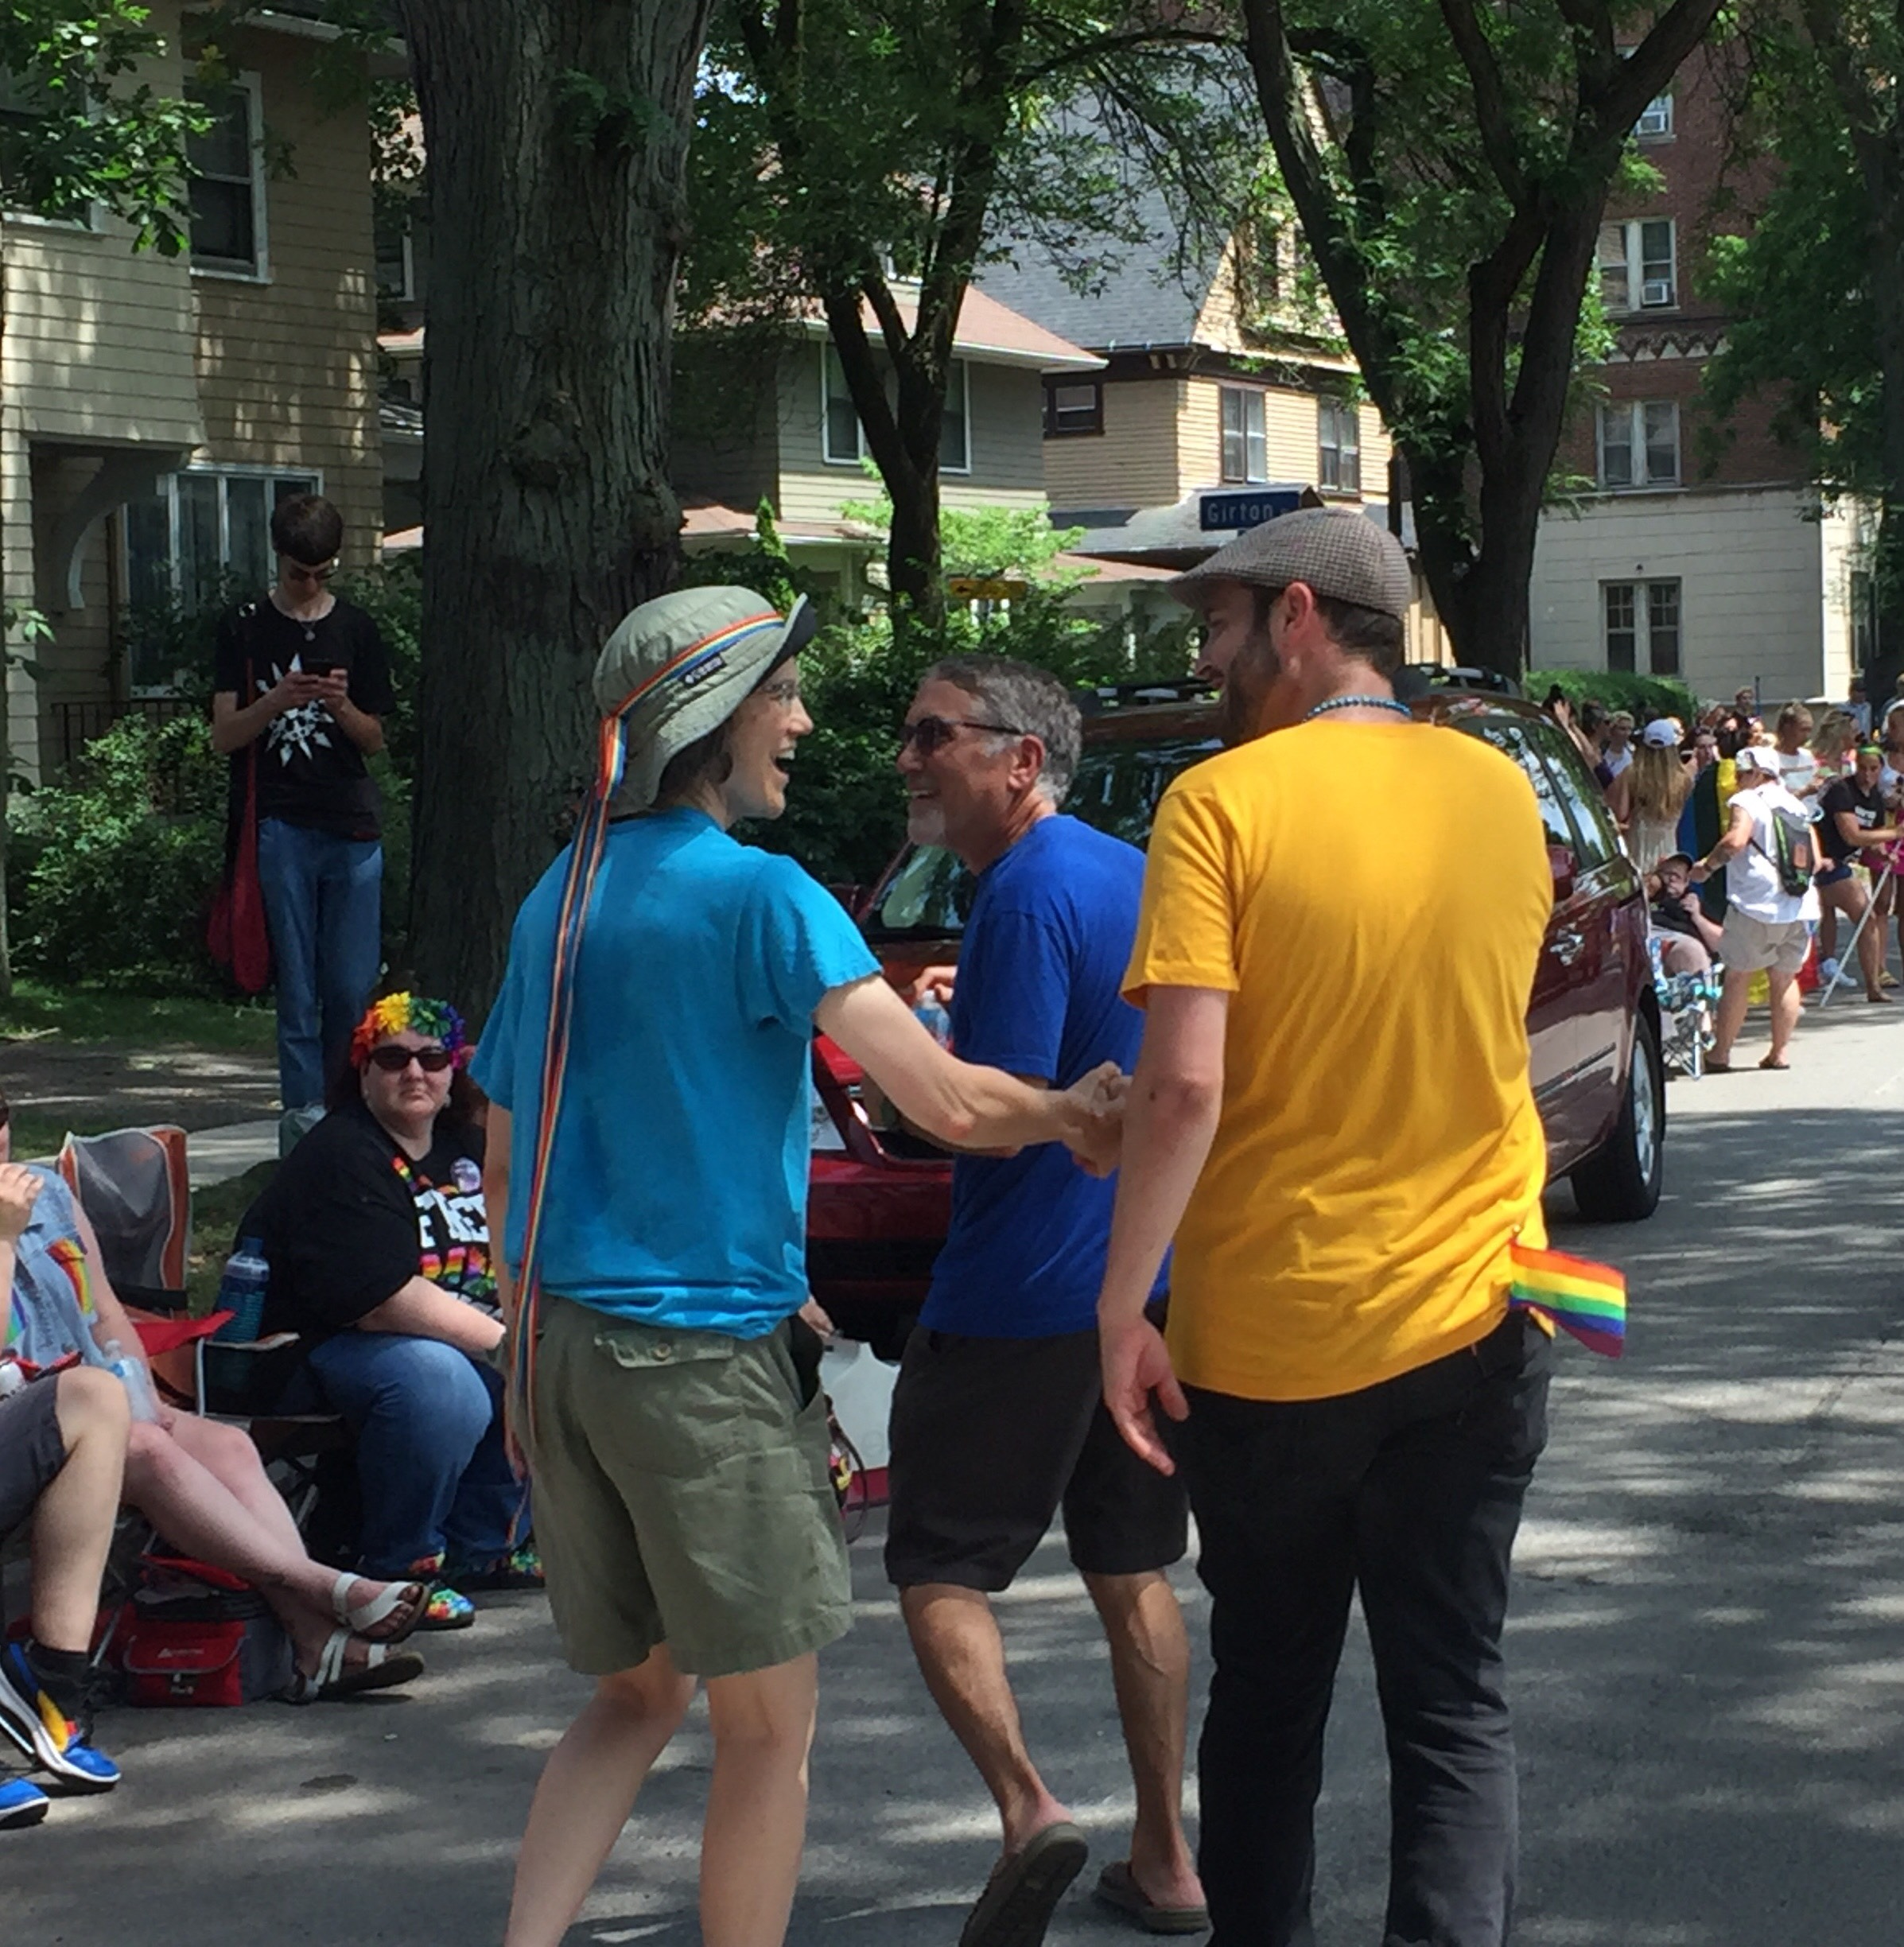 2019 07-20 Pride parade - MG talking to north side of st 2.jpeg